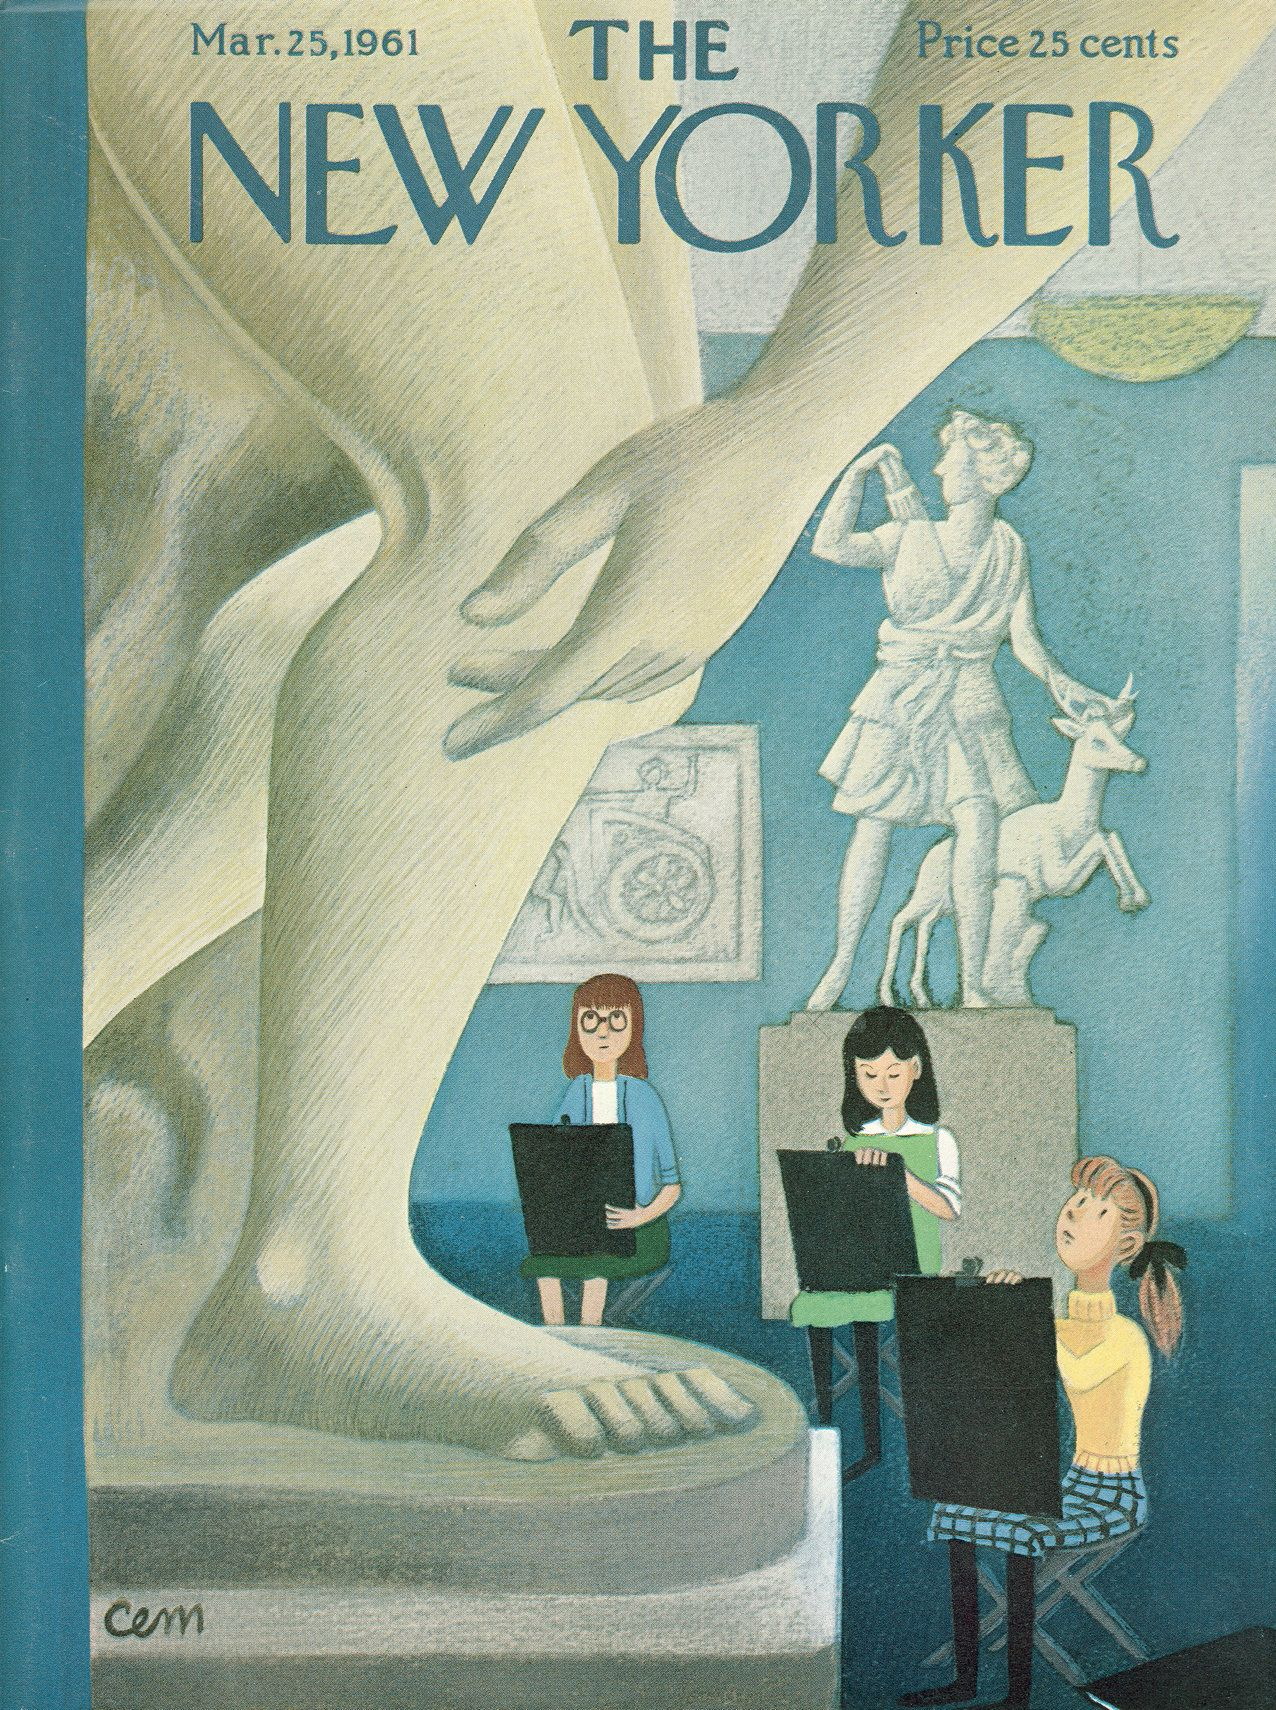 The New Yorker - Saturday, March 25, 1961 - Issue # 1884 - Vol. 37 - N° 6 - Cover by : Charles E. Martin